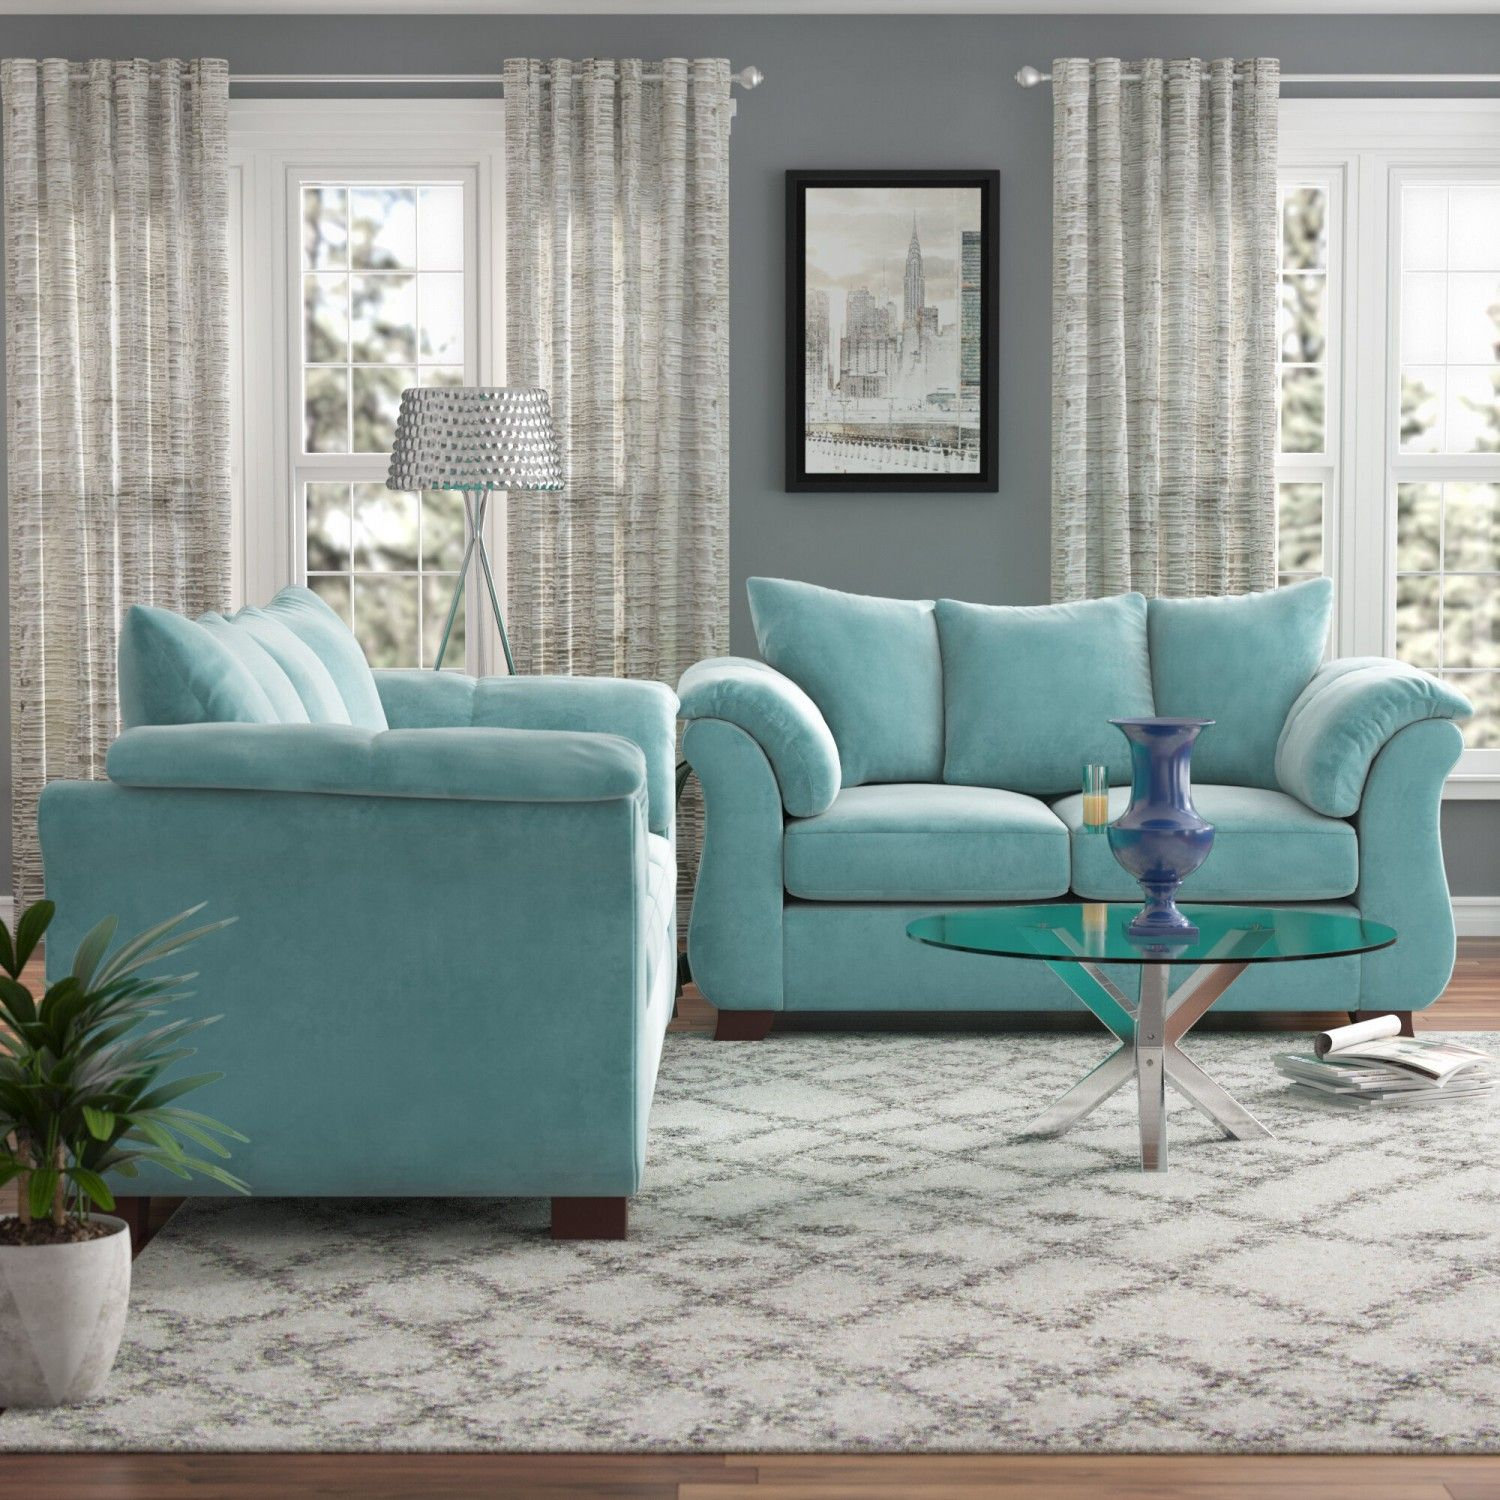 Norris Piece Living Room Set Turquoise Living Room Set In 2020 Living Room Turquoise Turquoise Living Room Decor Living Room Sets